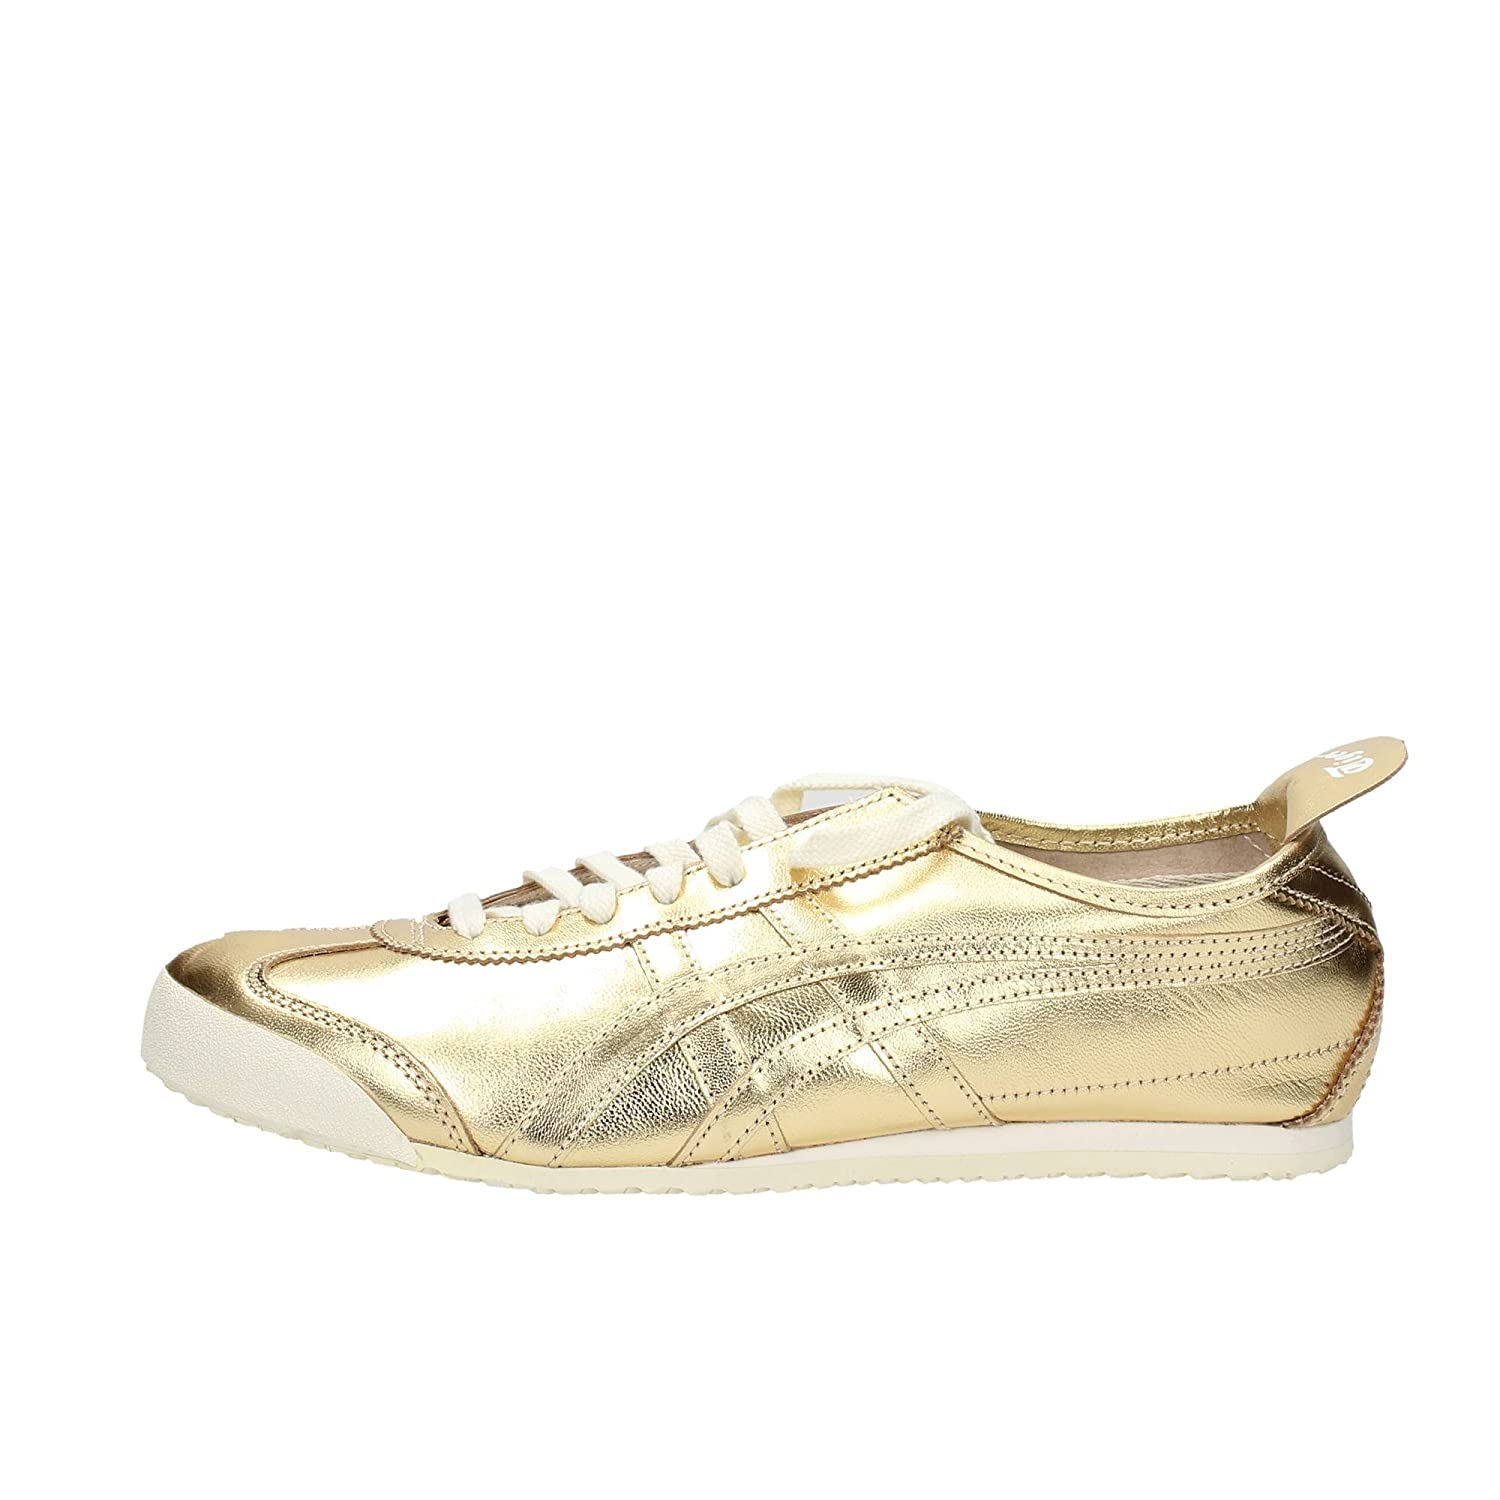 brand new edb1a 94f01 Onitsuka Tiger Mexico 66 Gold Gold Off White 39.5: Amazon.co ...